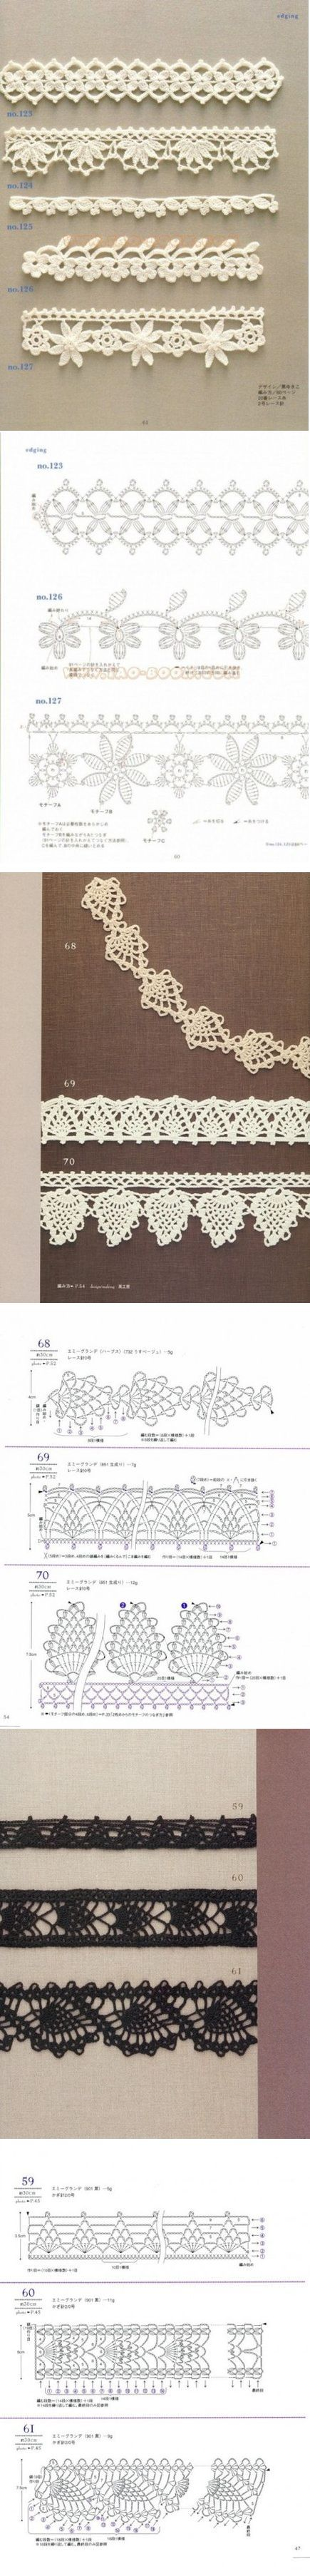 such delicate crochet edgings!: